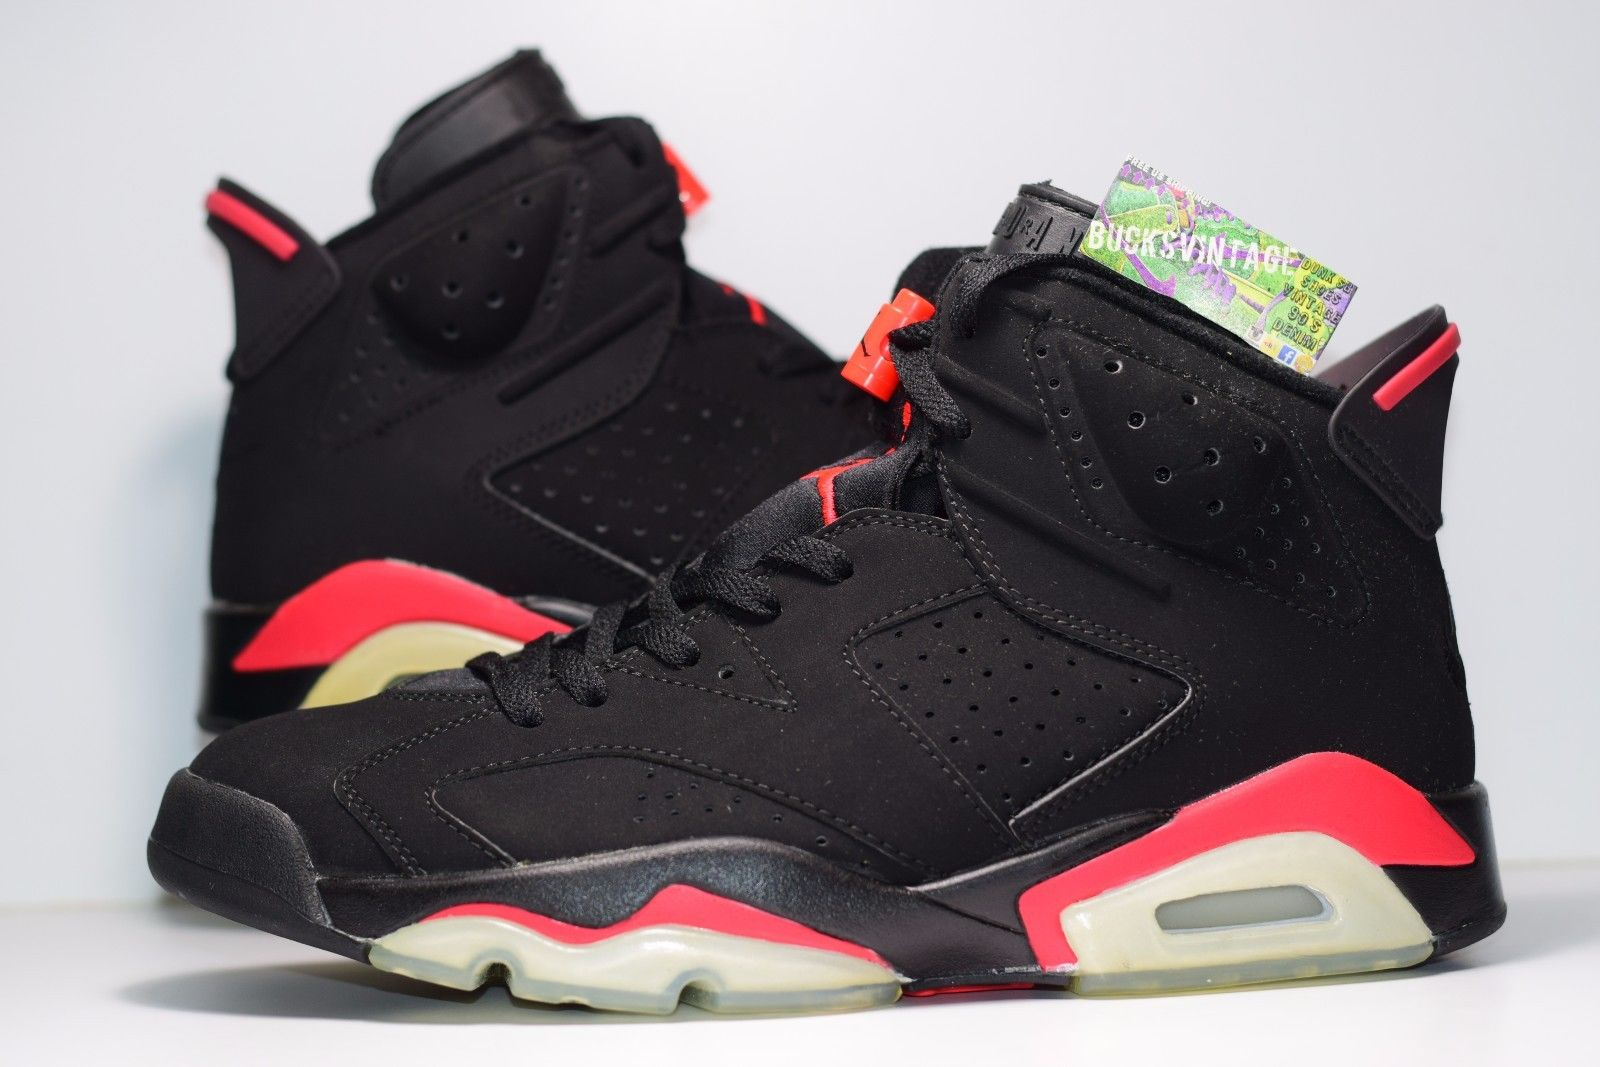 newest 3c2ea c6d89 Size 9   DS 2000 Nike Air Jordan VI 136038-061 black deep infrared